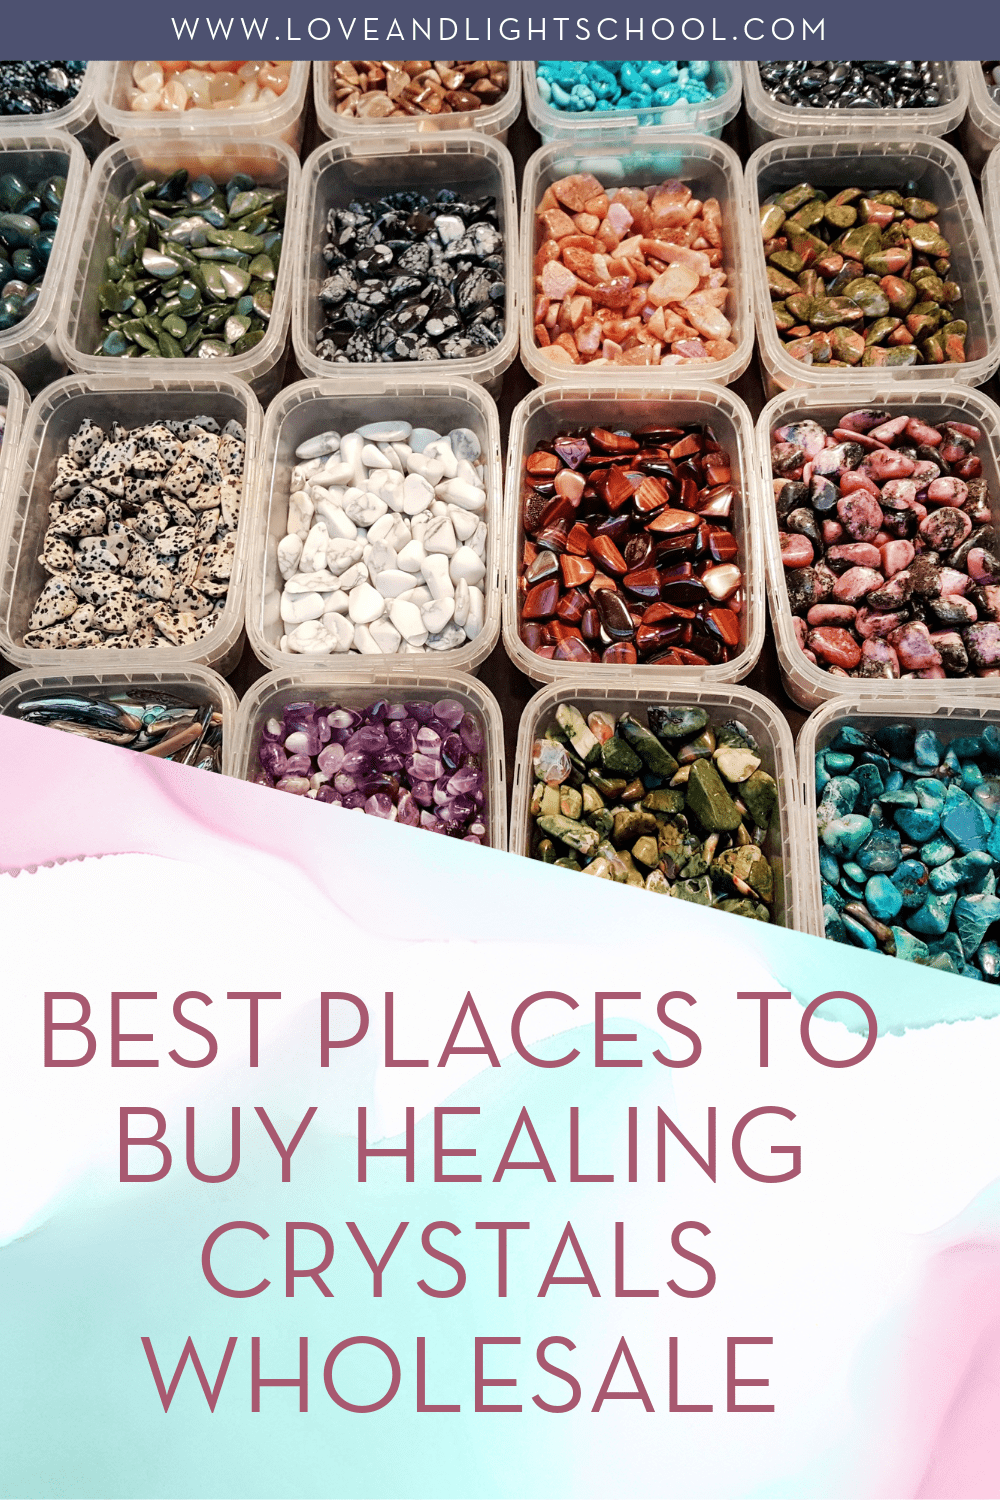 40 Places to Buy Healing Crystals Wholesale - Love & Light School of